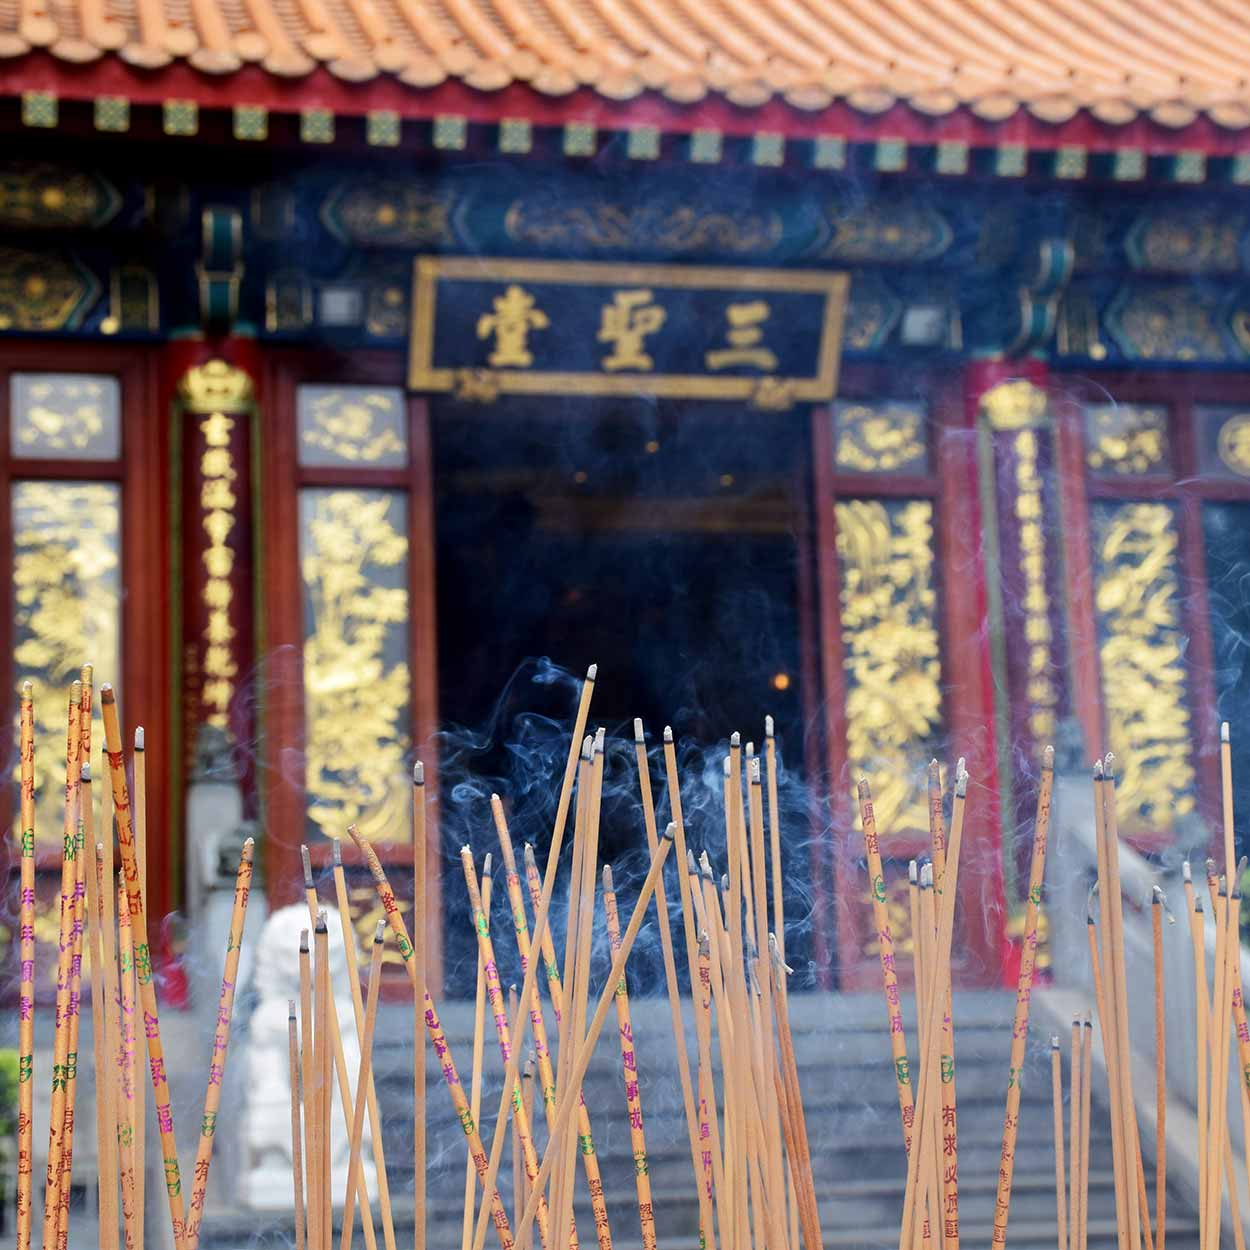 Incense smoke fills the air at the Three Saints Hall, Sik Sik Yuen Wong Tai Sin Temple, Hong Kong, China